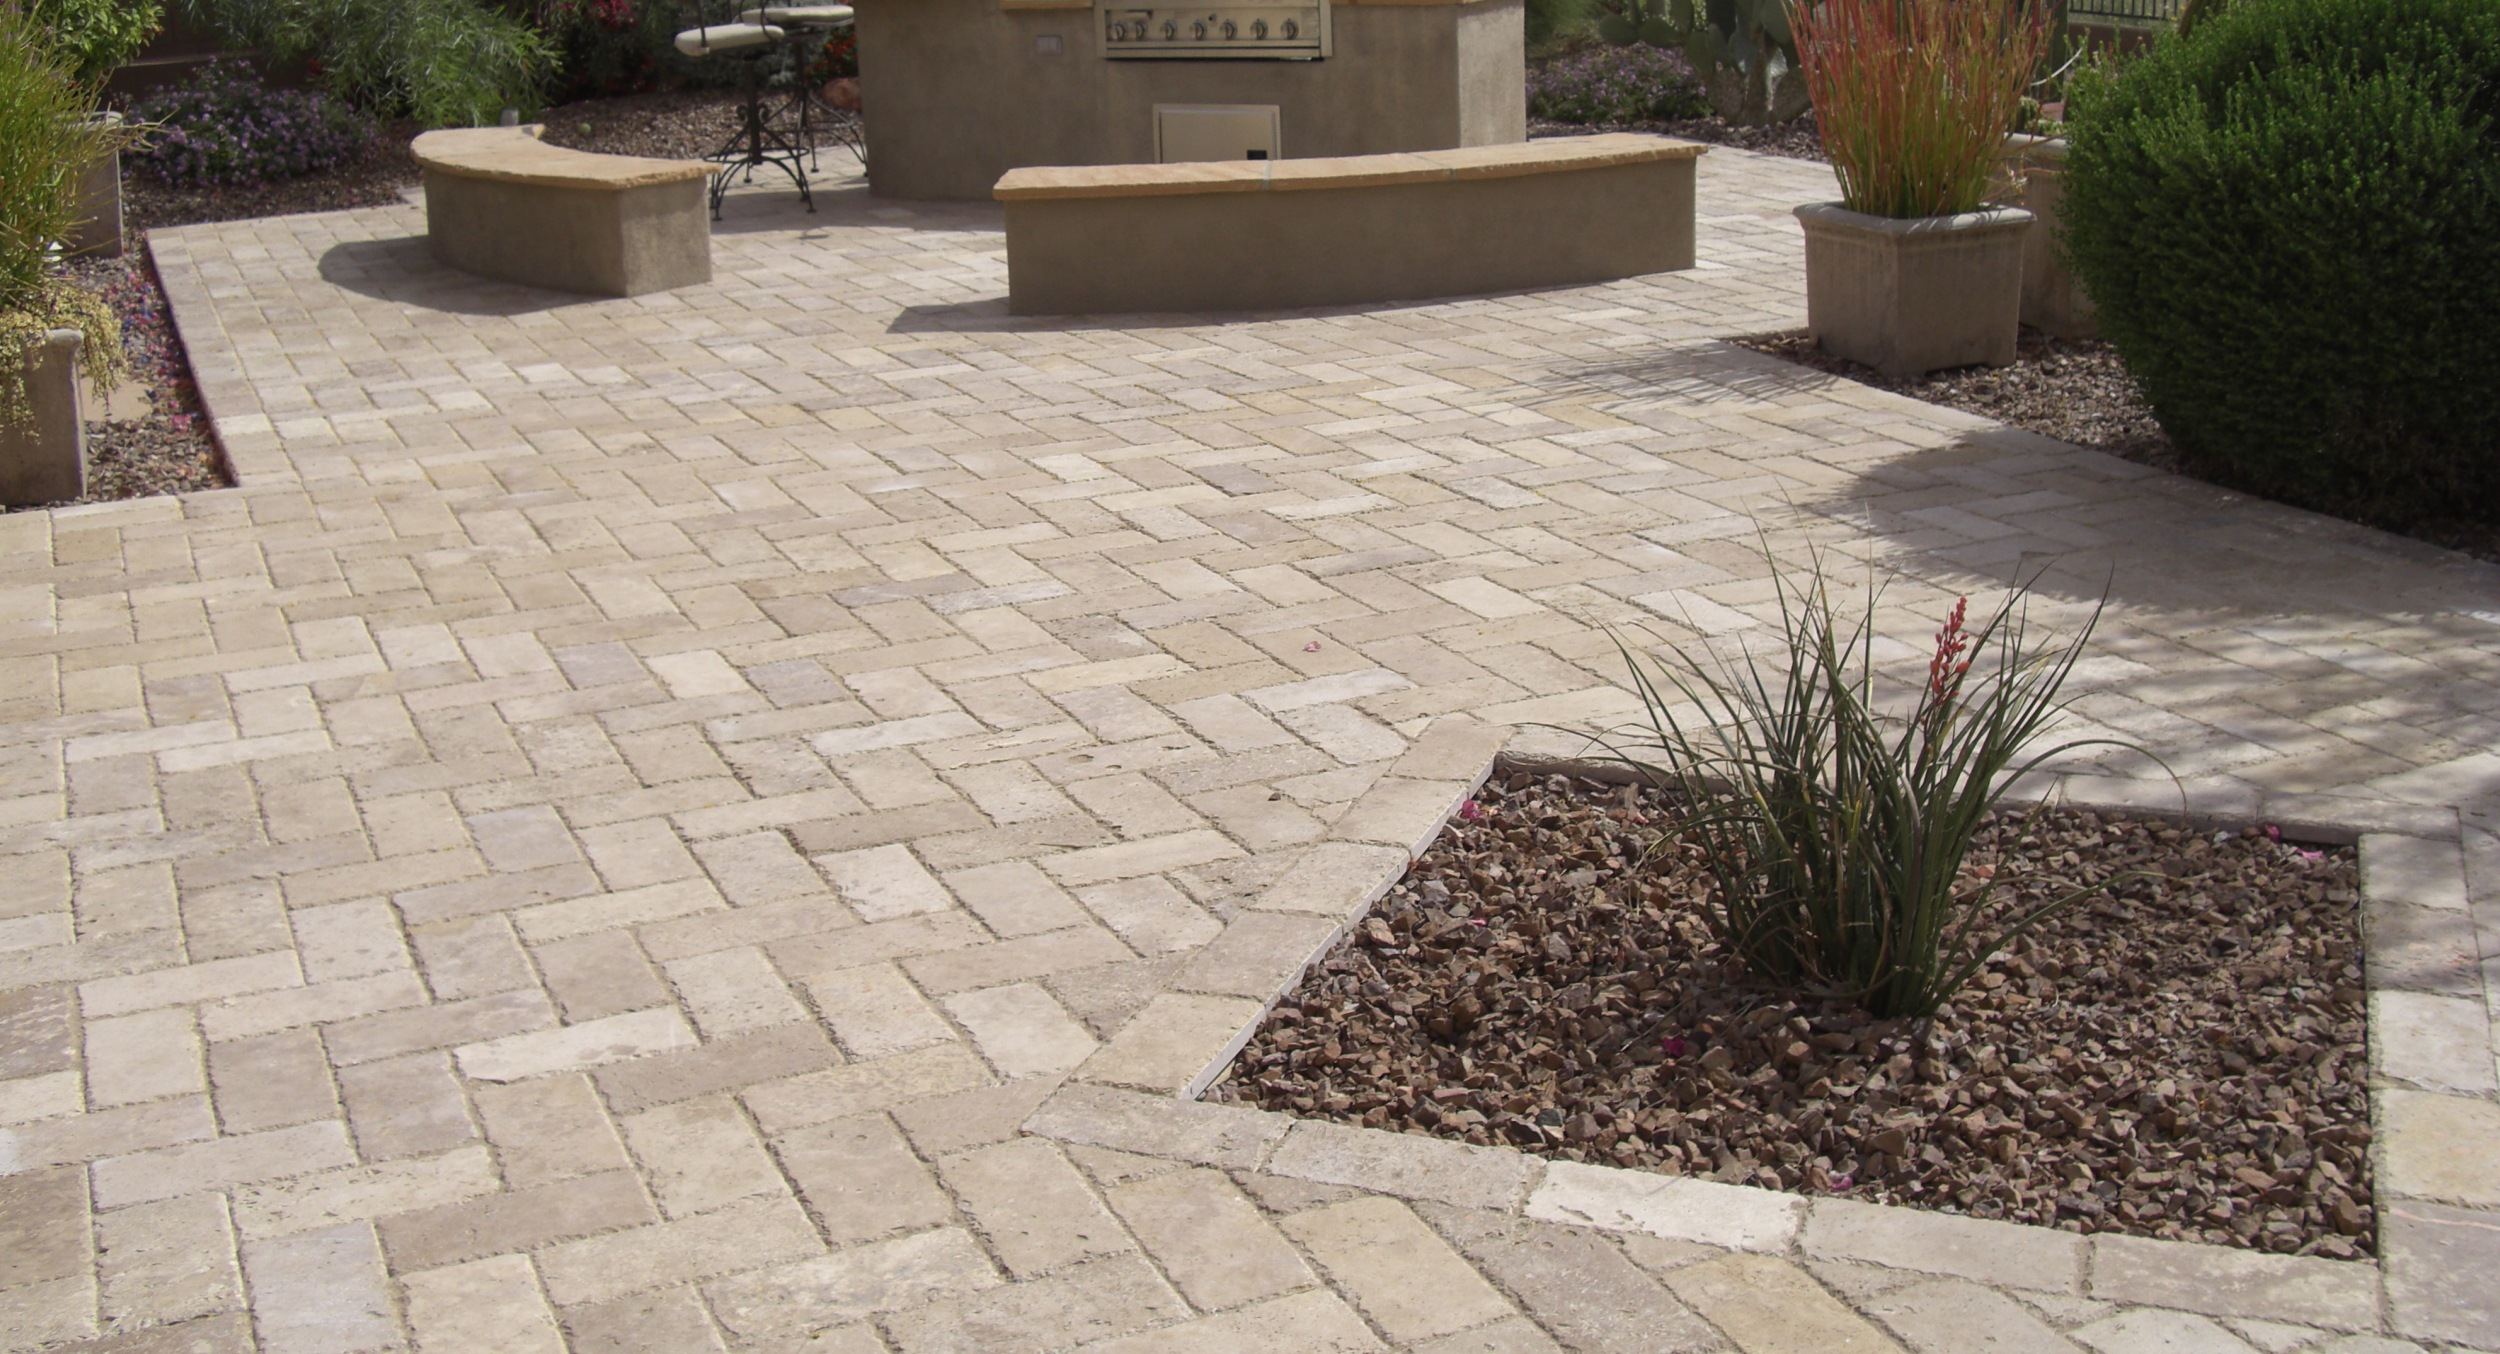 Travertine makes beautiful paver patios. Peoria, AZ landscaping for this Desert Crest client included this spacious outdoor living space with chisel travertine in a brick shape.